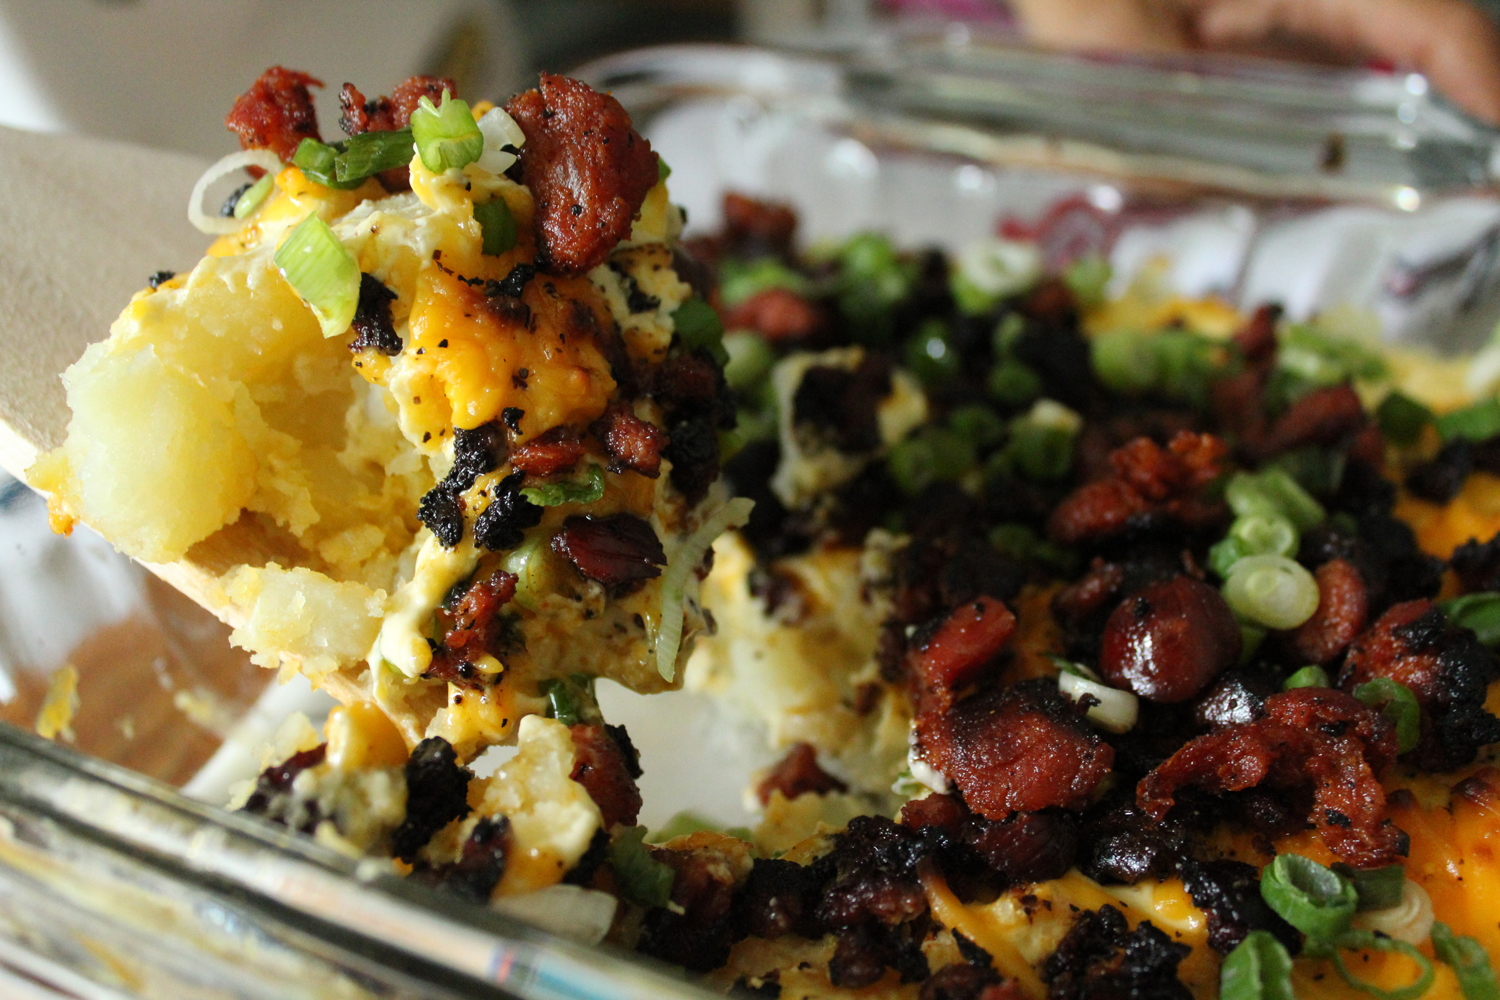 Loaded potato and chorizo casserole